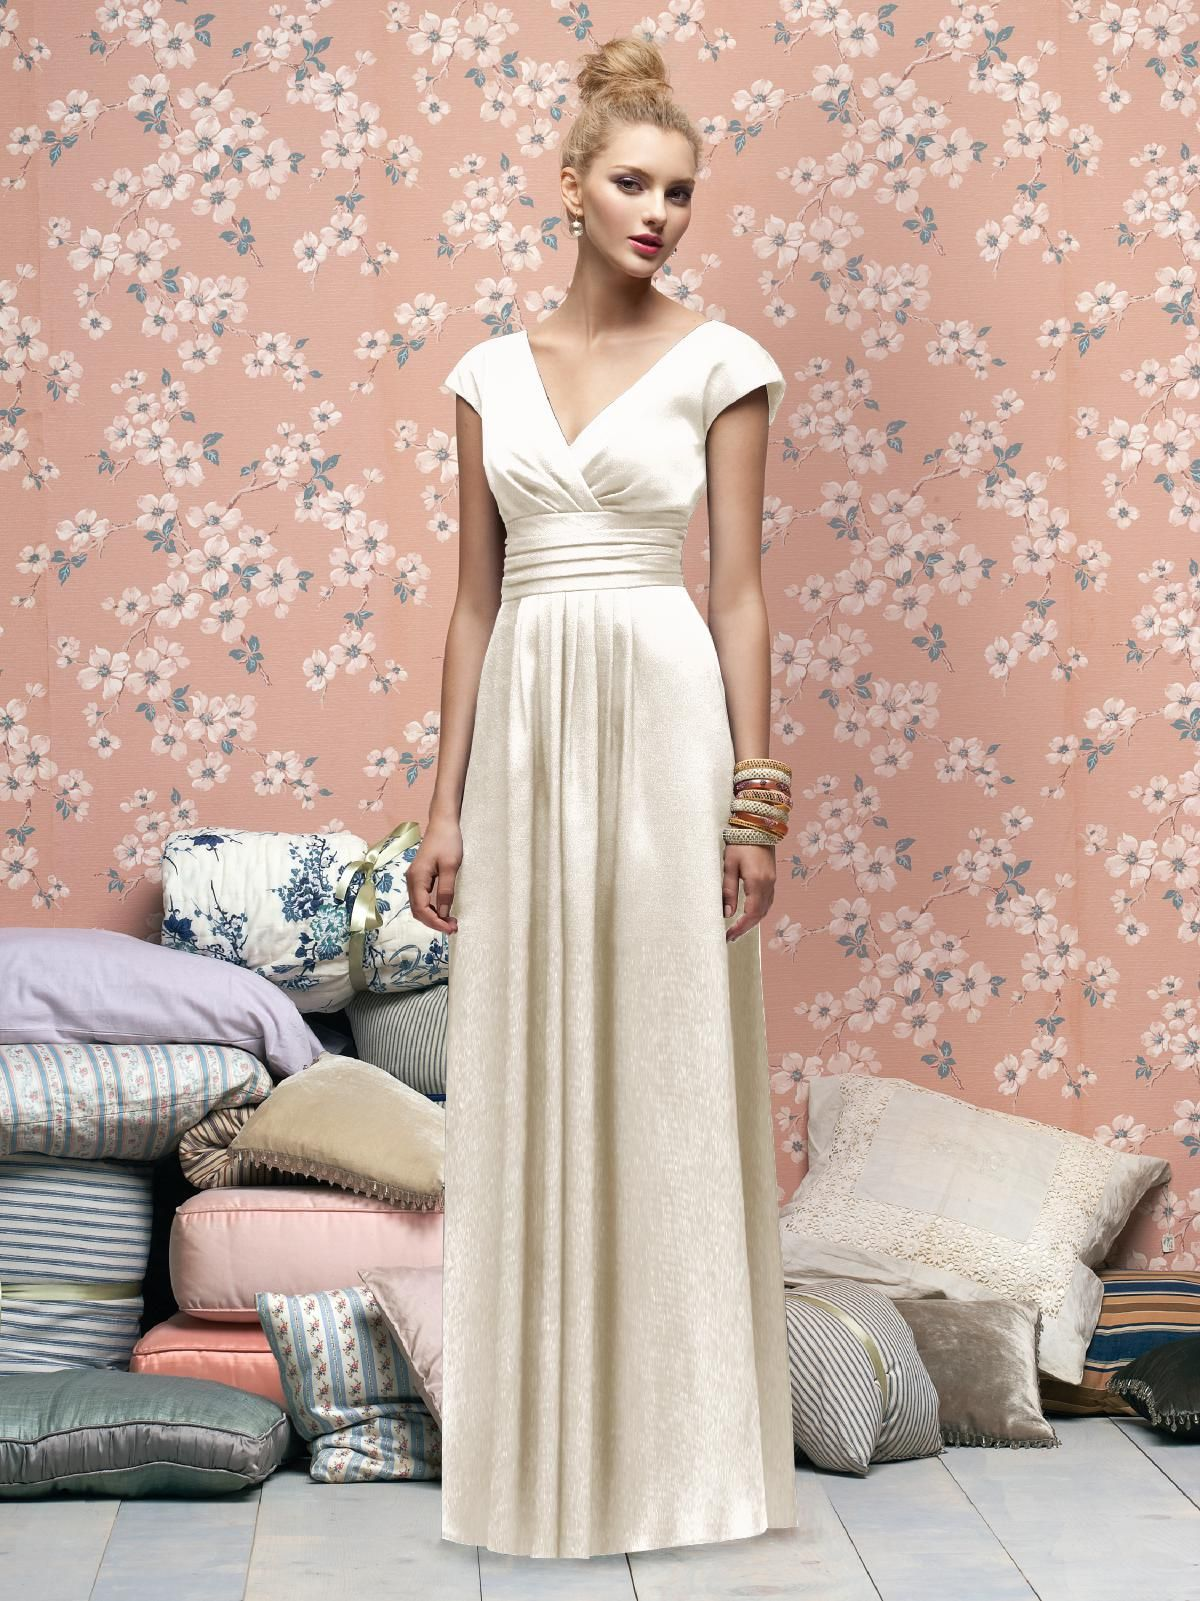 Pin by Alice on Fashion   Pinterest   Modest bridesmaid dresses ...